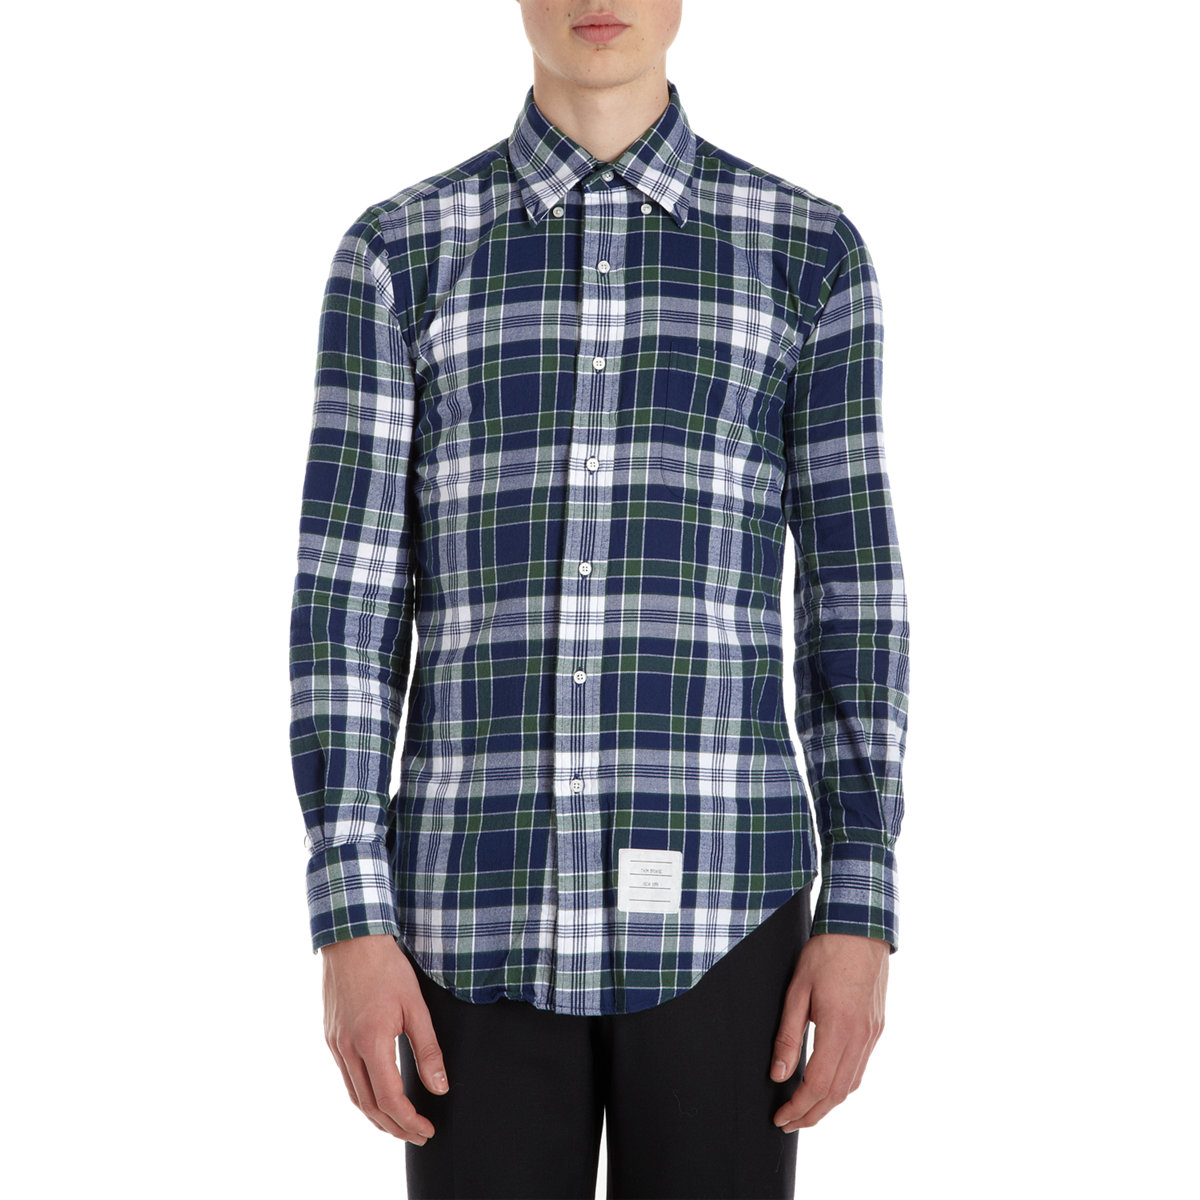 Thom browne plaid flannel shirt in blue for men navy lyst for Navy blue plaid shirt